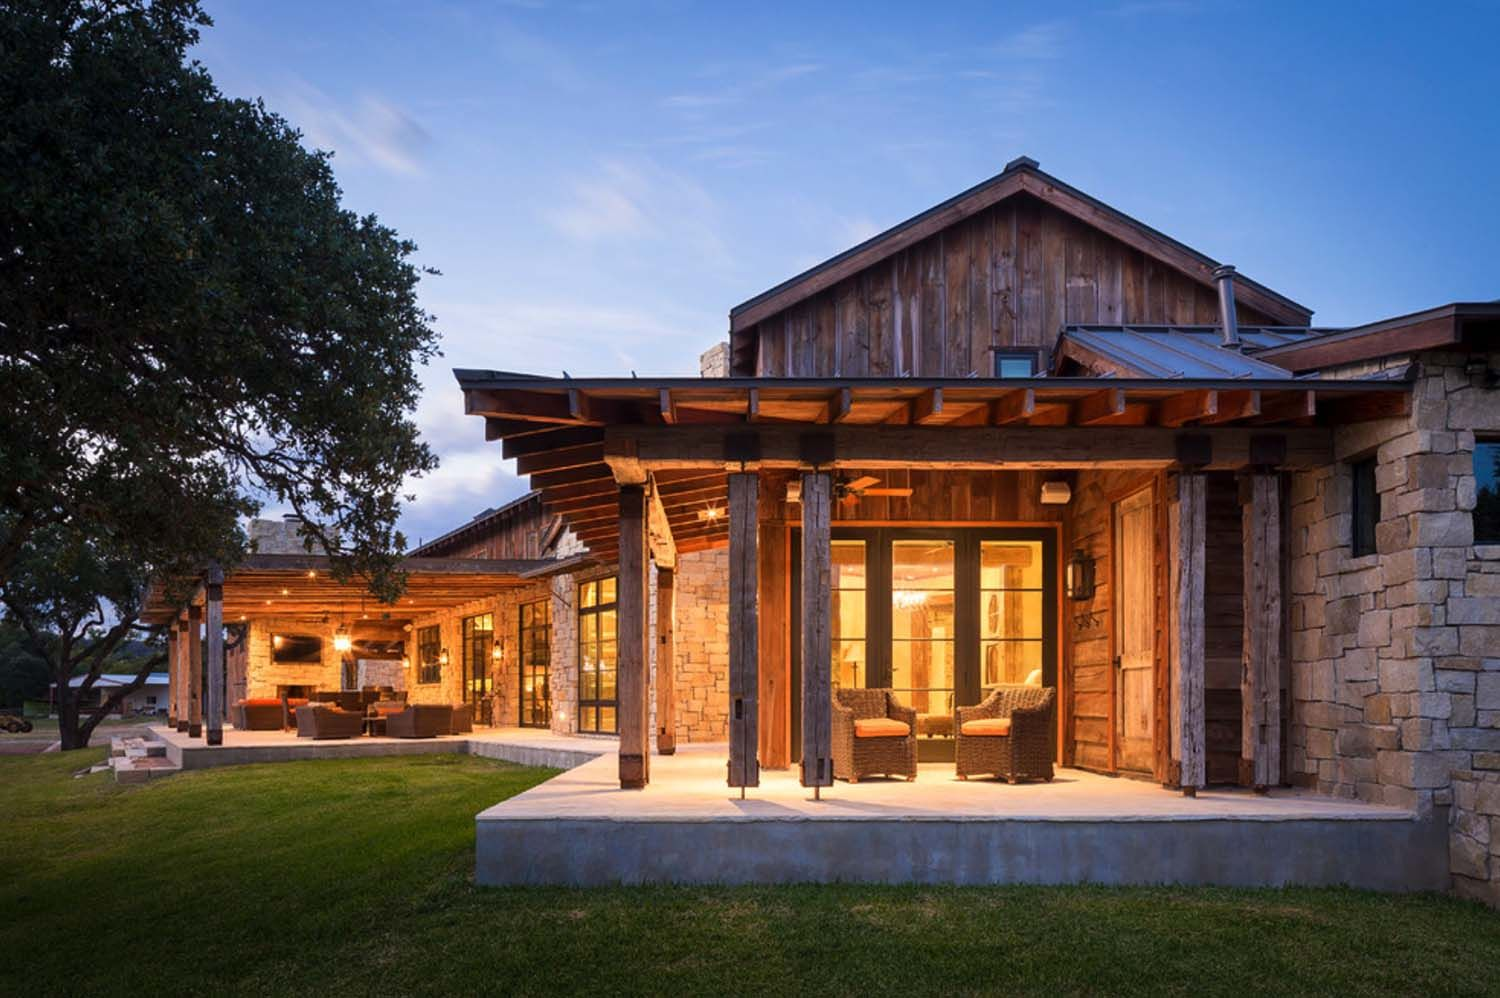 Modern Rustic Barn Style Retreat In Texas Hill Country Ranch House Designs Ranch Style Homes Ranch House Plans